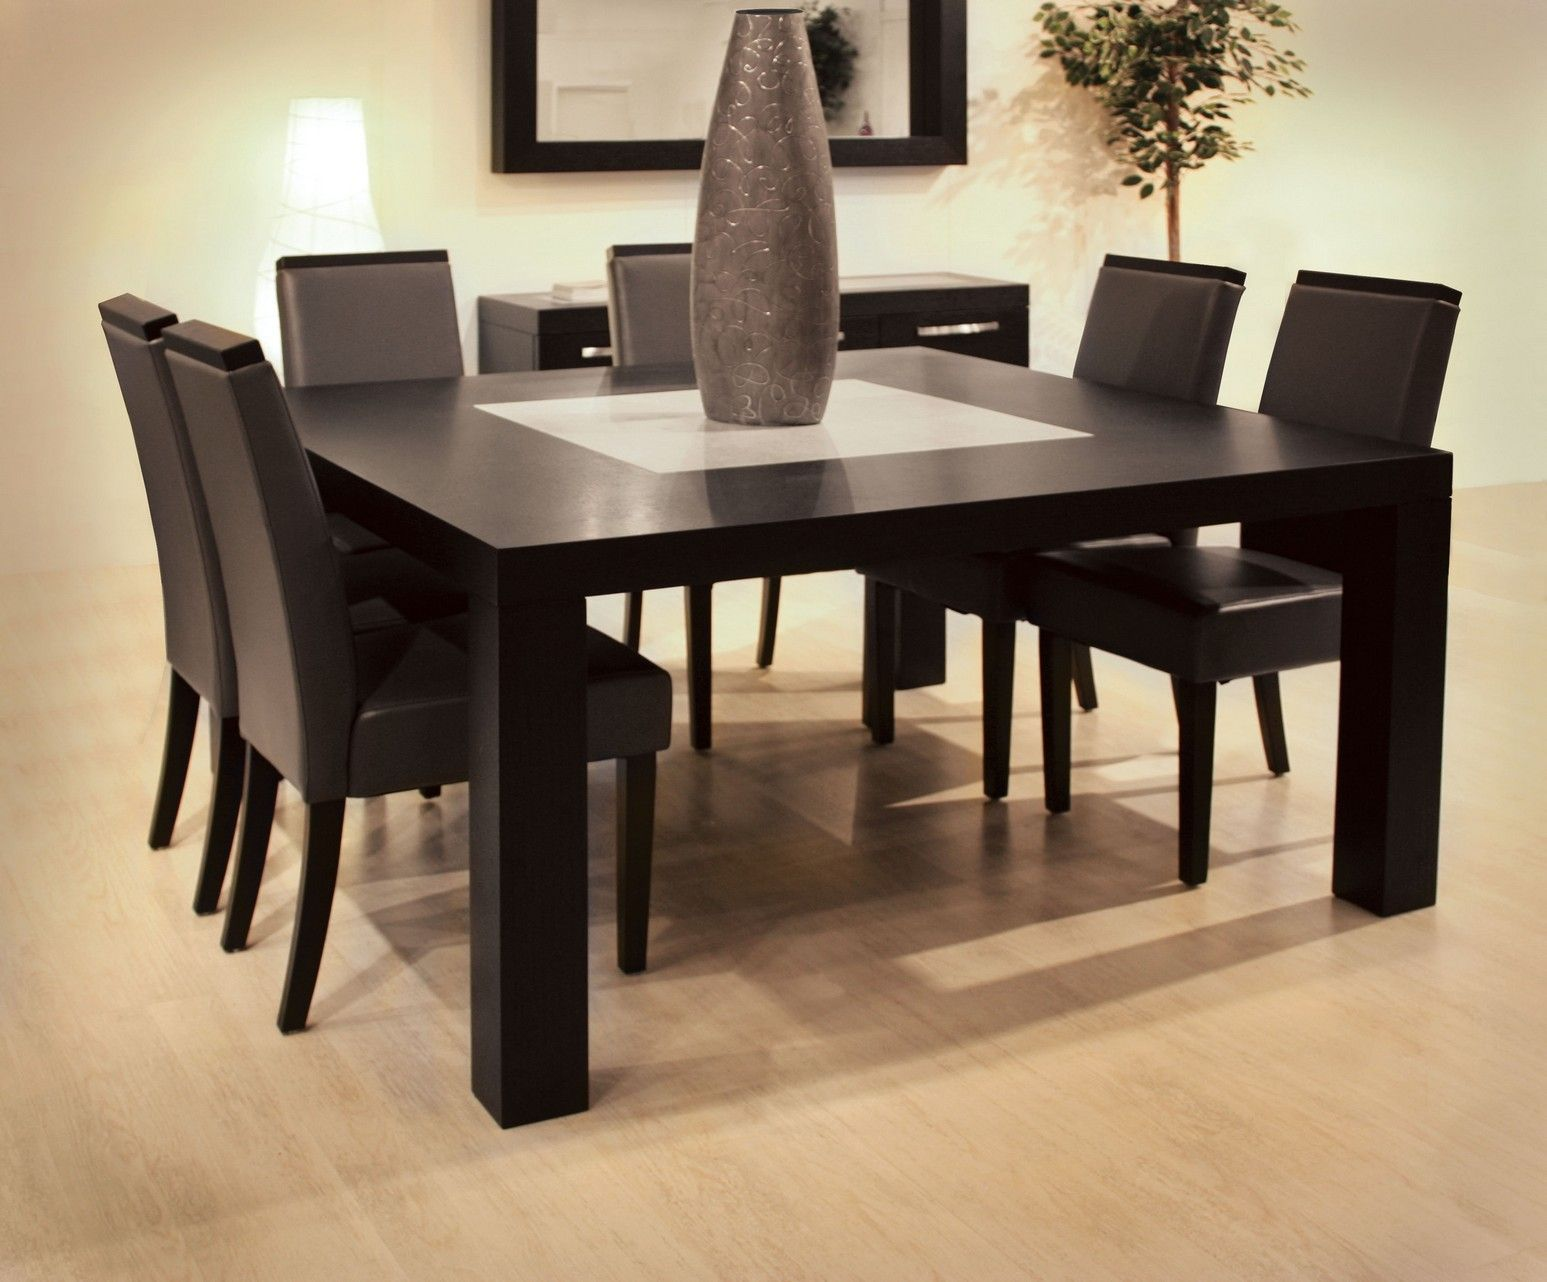 square kitchen table SQUARE DINING TABLE Interior Design